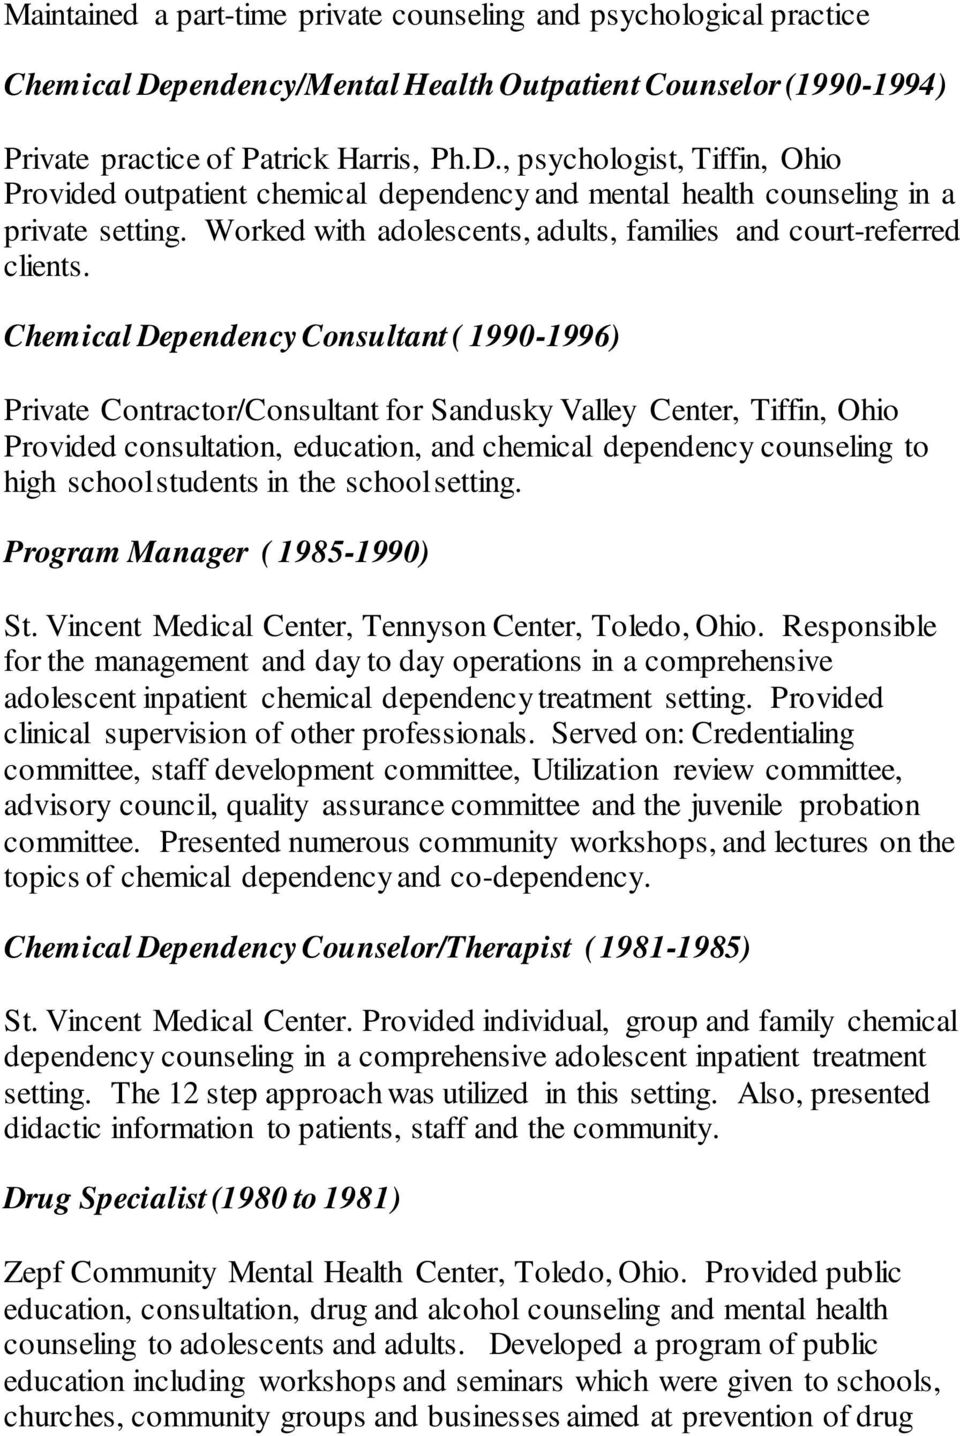 Chemical Dependency Consultant ( 1990-1996) Private Contractor/Consultant for Sandusky Valley Center, Tiffin, Ohio Provided consultation, education, and chemical dependency counseling to high school